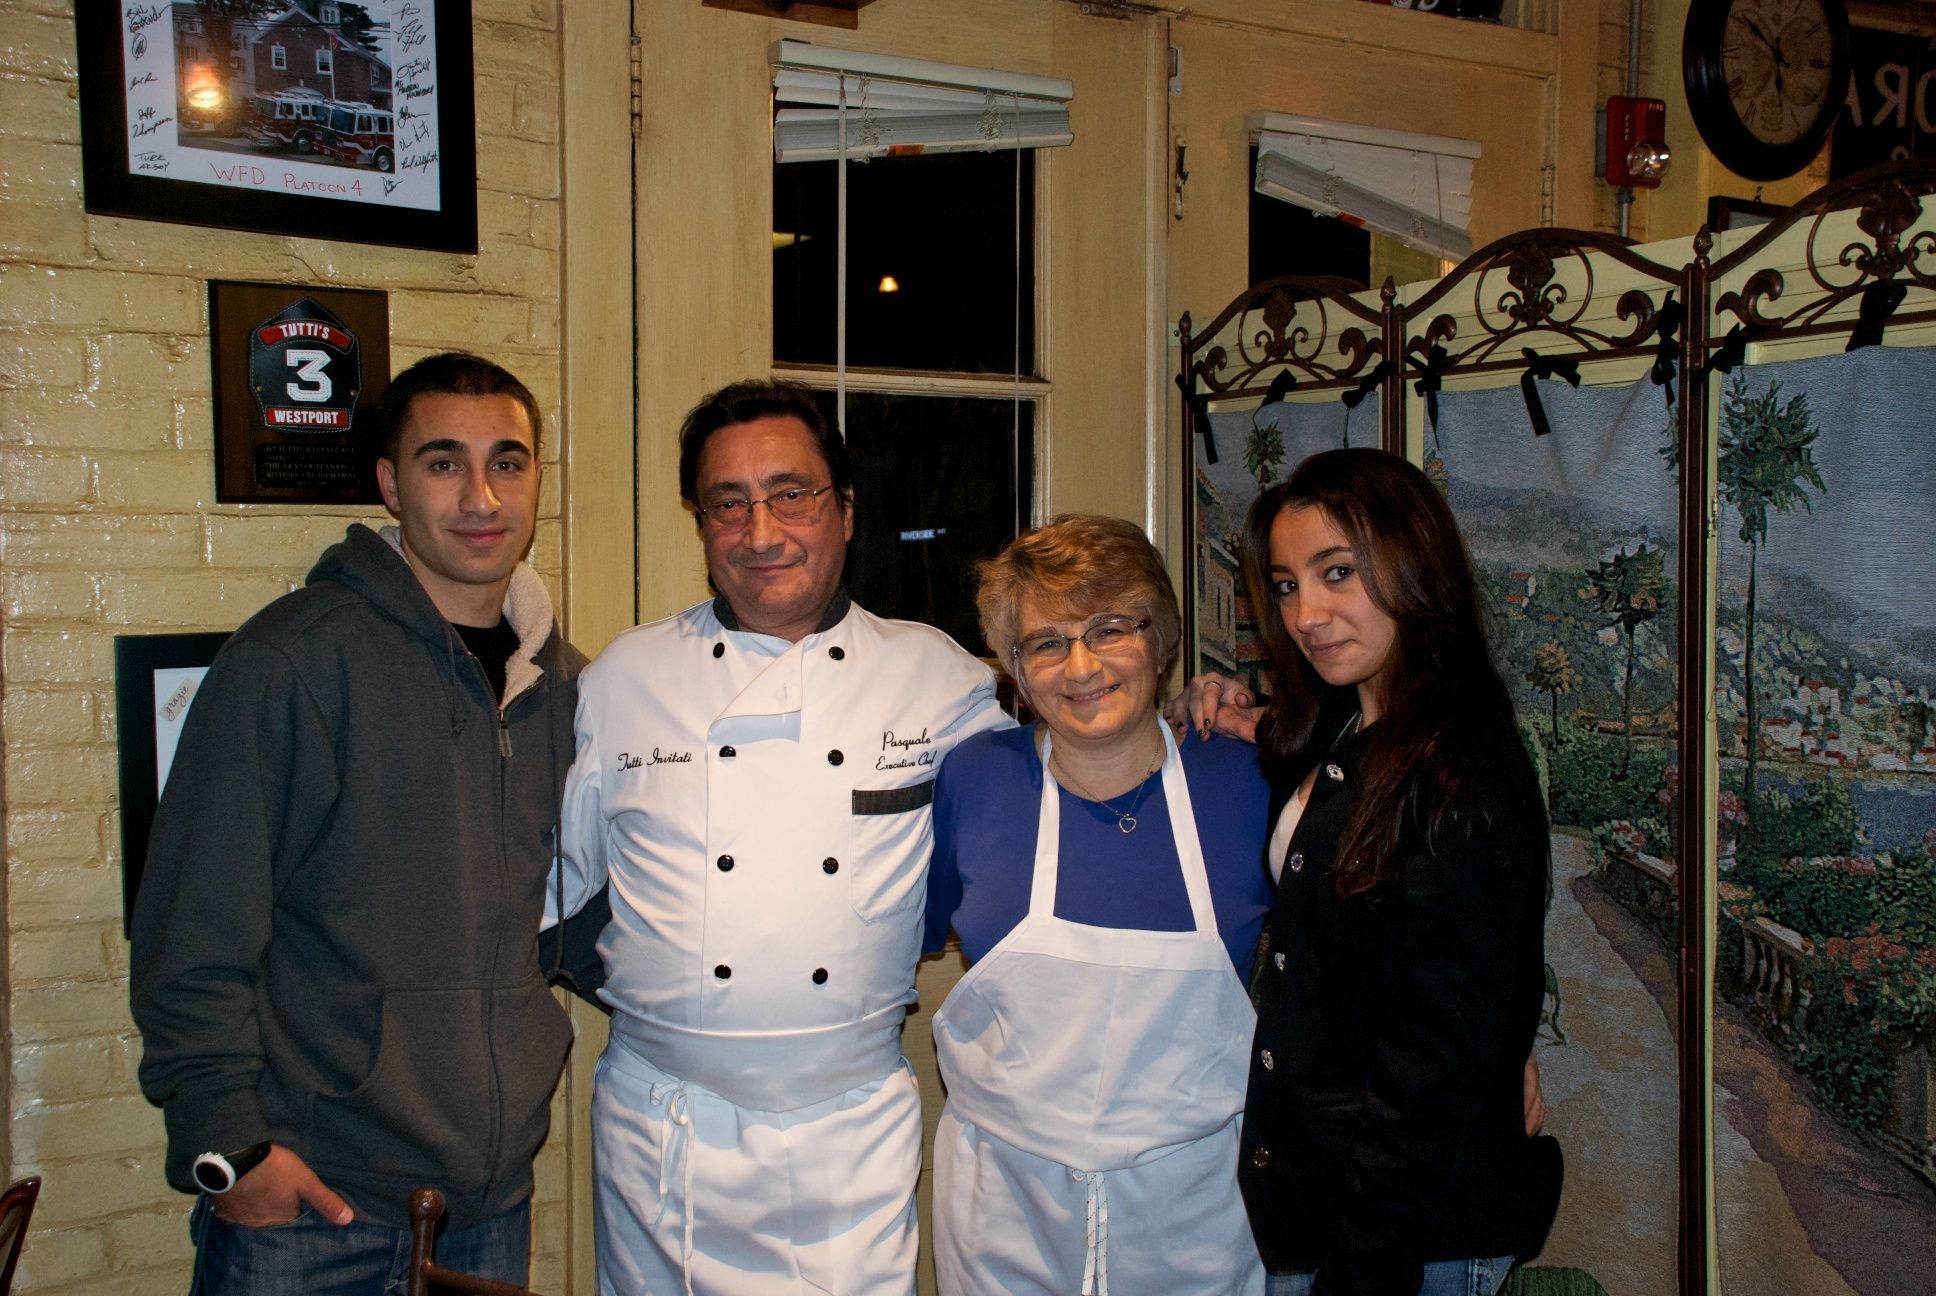 Tutti's Ristorante is the restaurant that my parents own in Westport, CT.  They have had this restaurant for about 10 years and my dad is the chef.  In this picture there is my brother, dad, mom, oh! And theres me! :) Come in try the good Italian food!  Or check us out at www.tuttisonline.com